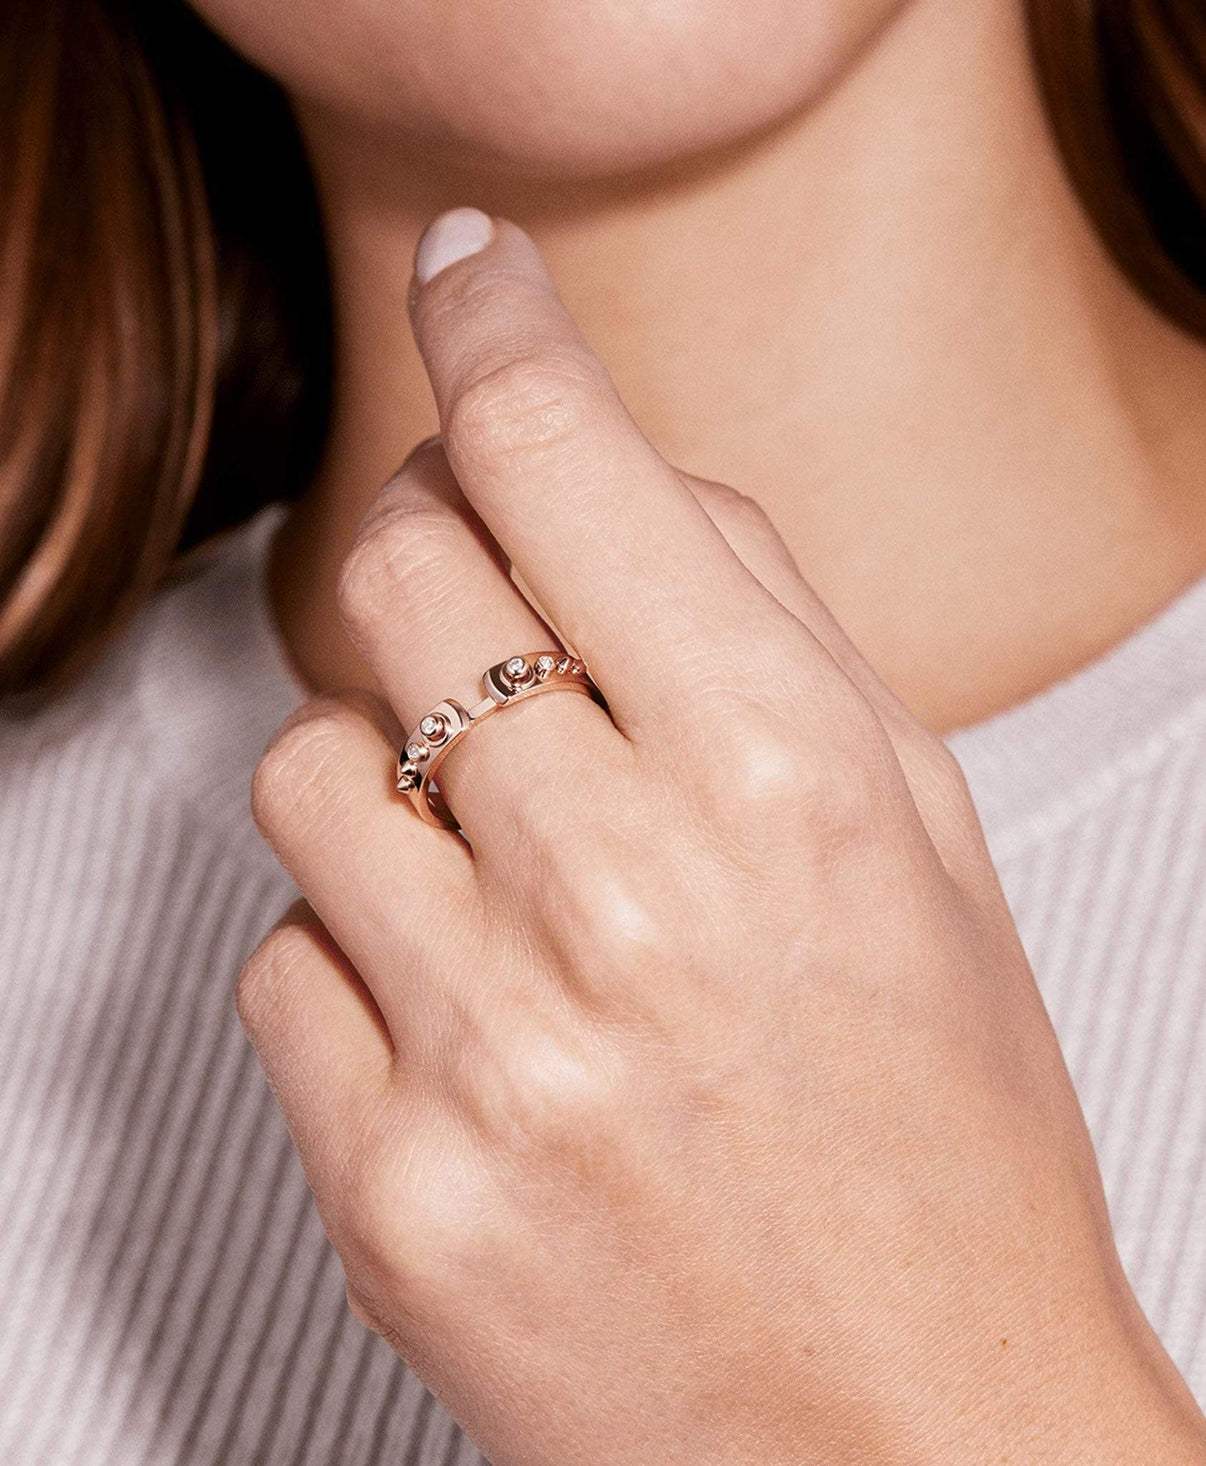 Brunch in NY Mood Ring: Discover Luxury Fine Jewelry | Nouvel Heritage